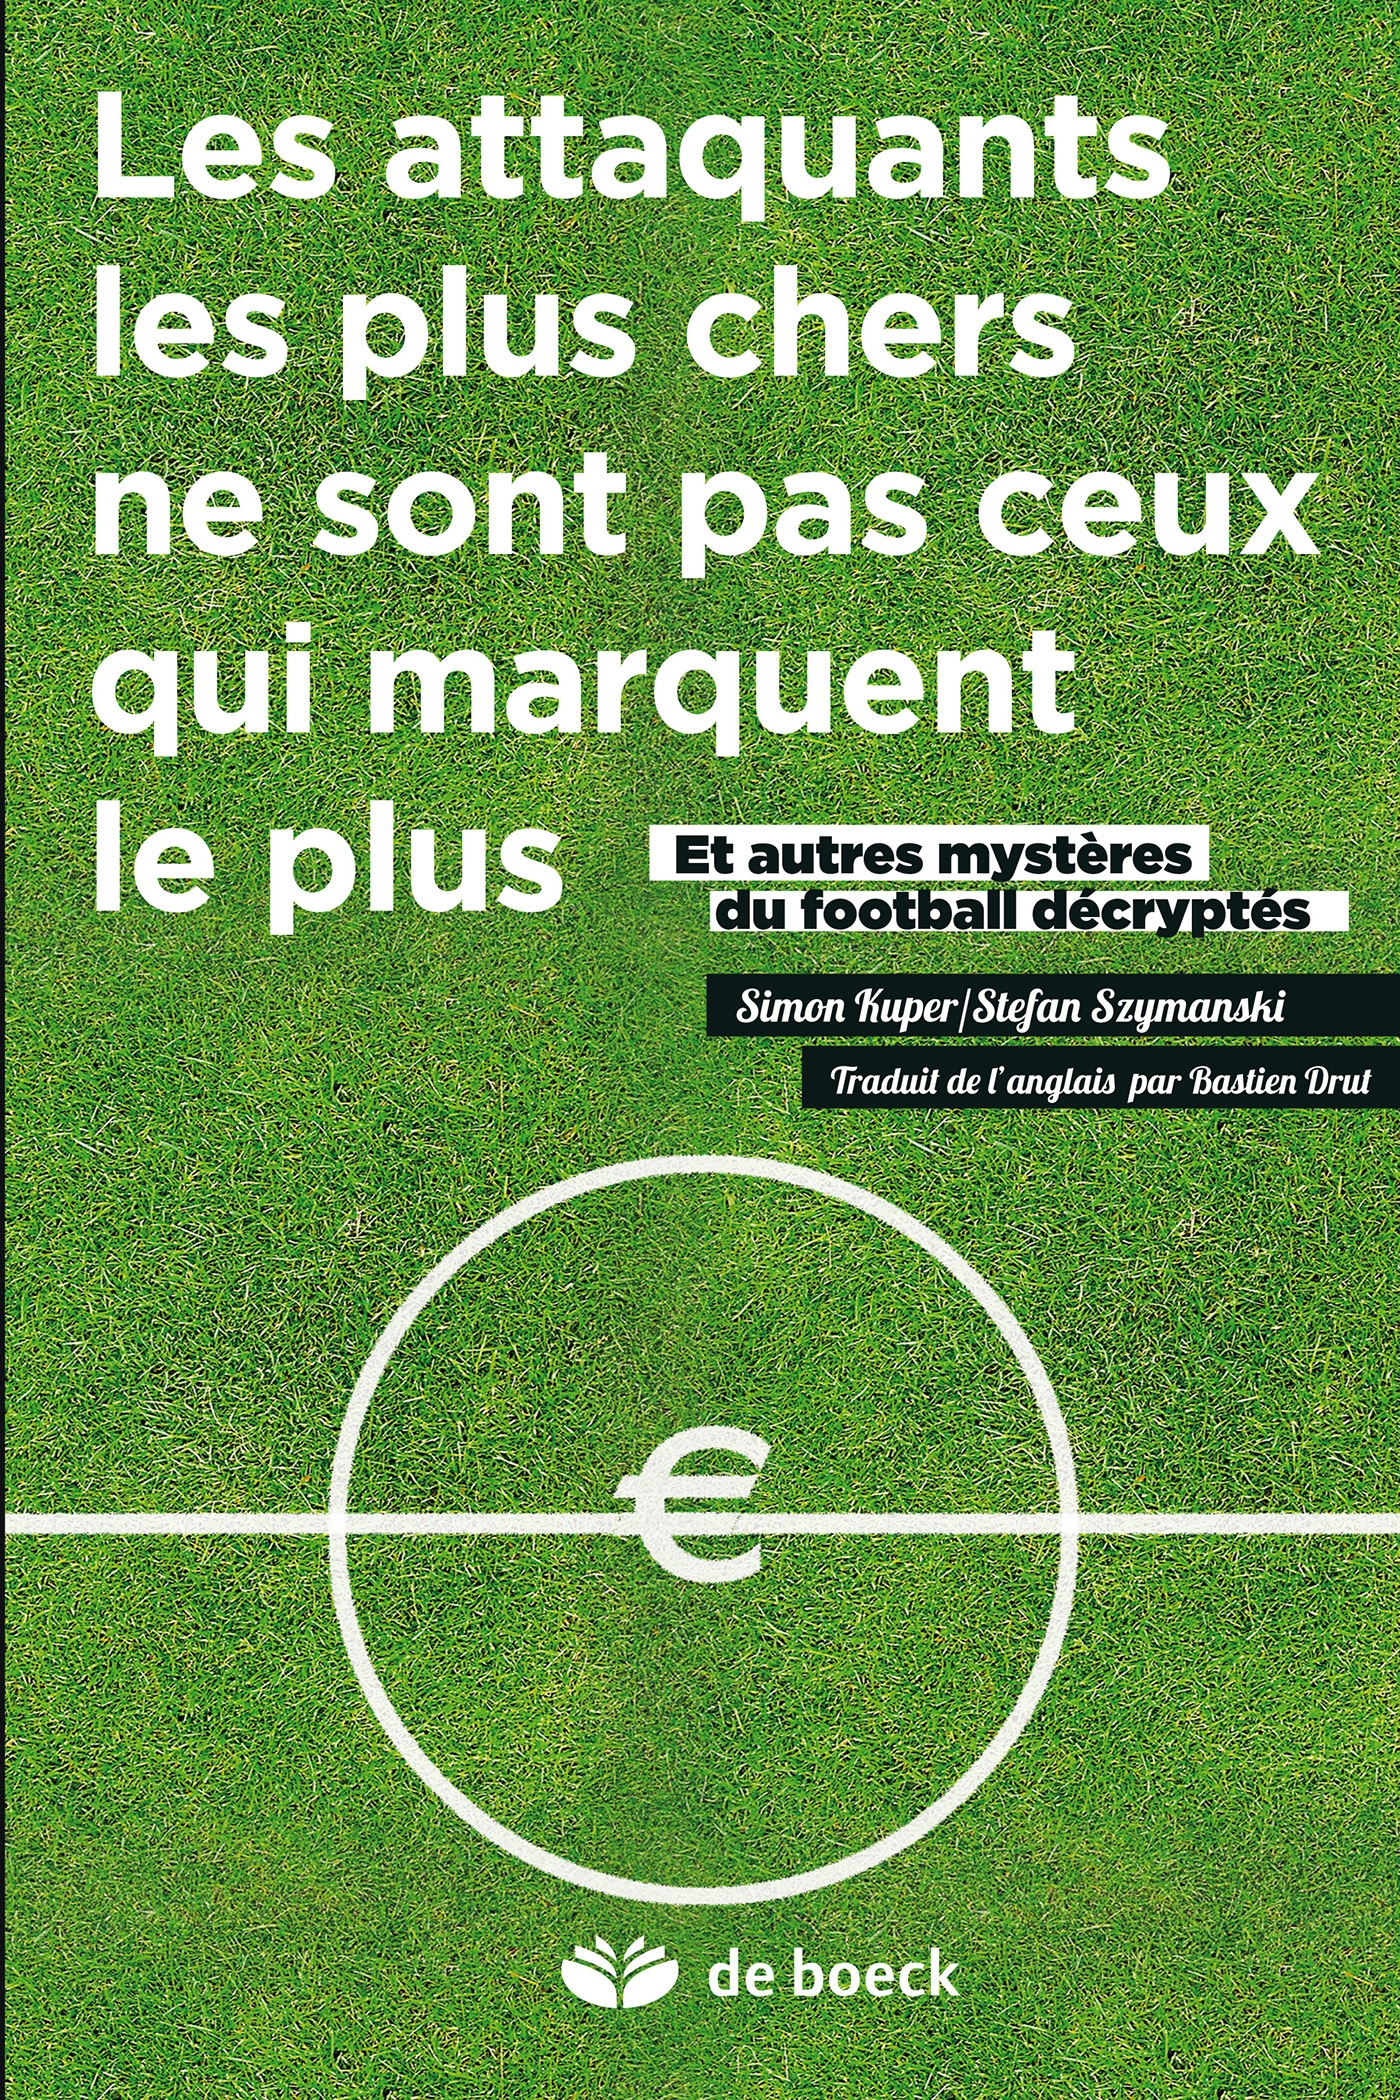 Les coulisses du football